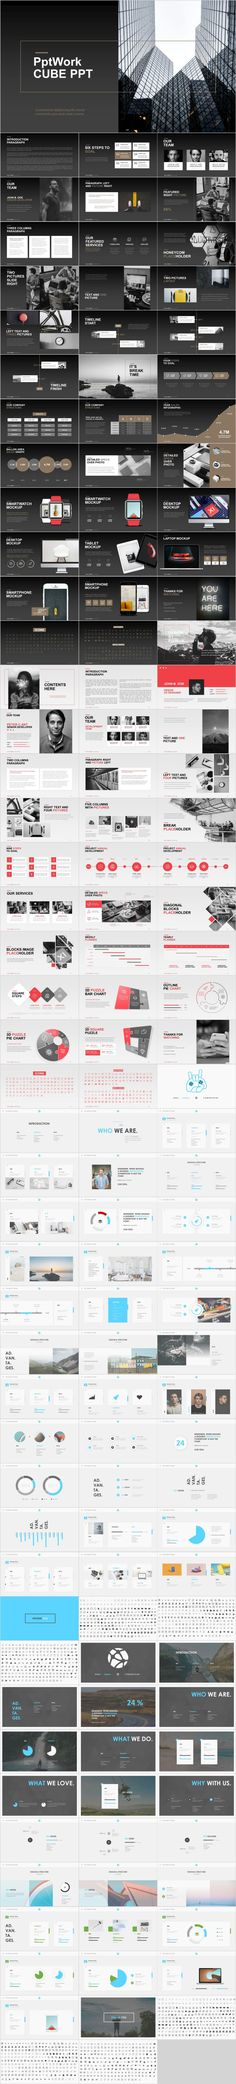 4 in 1 Creative Professional PowerPoint Template Template Web, Powerpoint Design Templates, Professional Powerpoint Templates, Powerpoint Themes, Keynote Template, Web Design, Layout Design, Design Art, Book Presentation